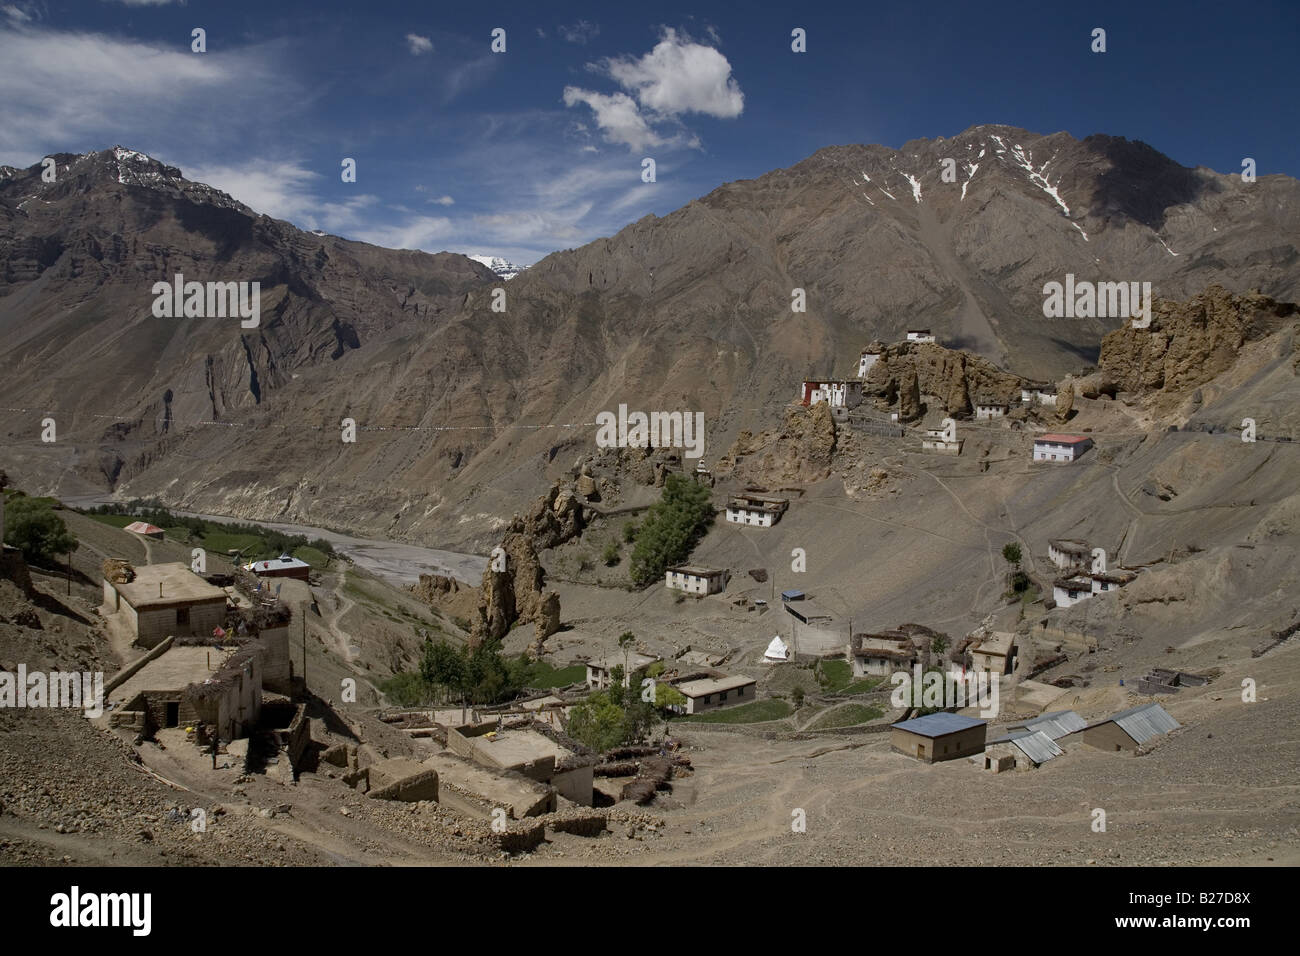 View of Dhankar village (3890m) and monastery. Spiti valley, Himachal Pradesh. India, Asia. - Stock Image